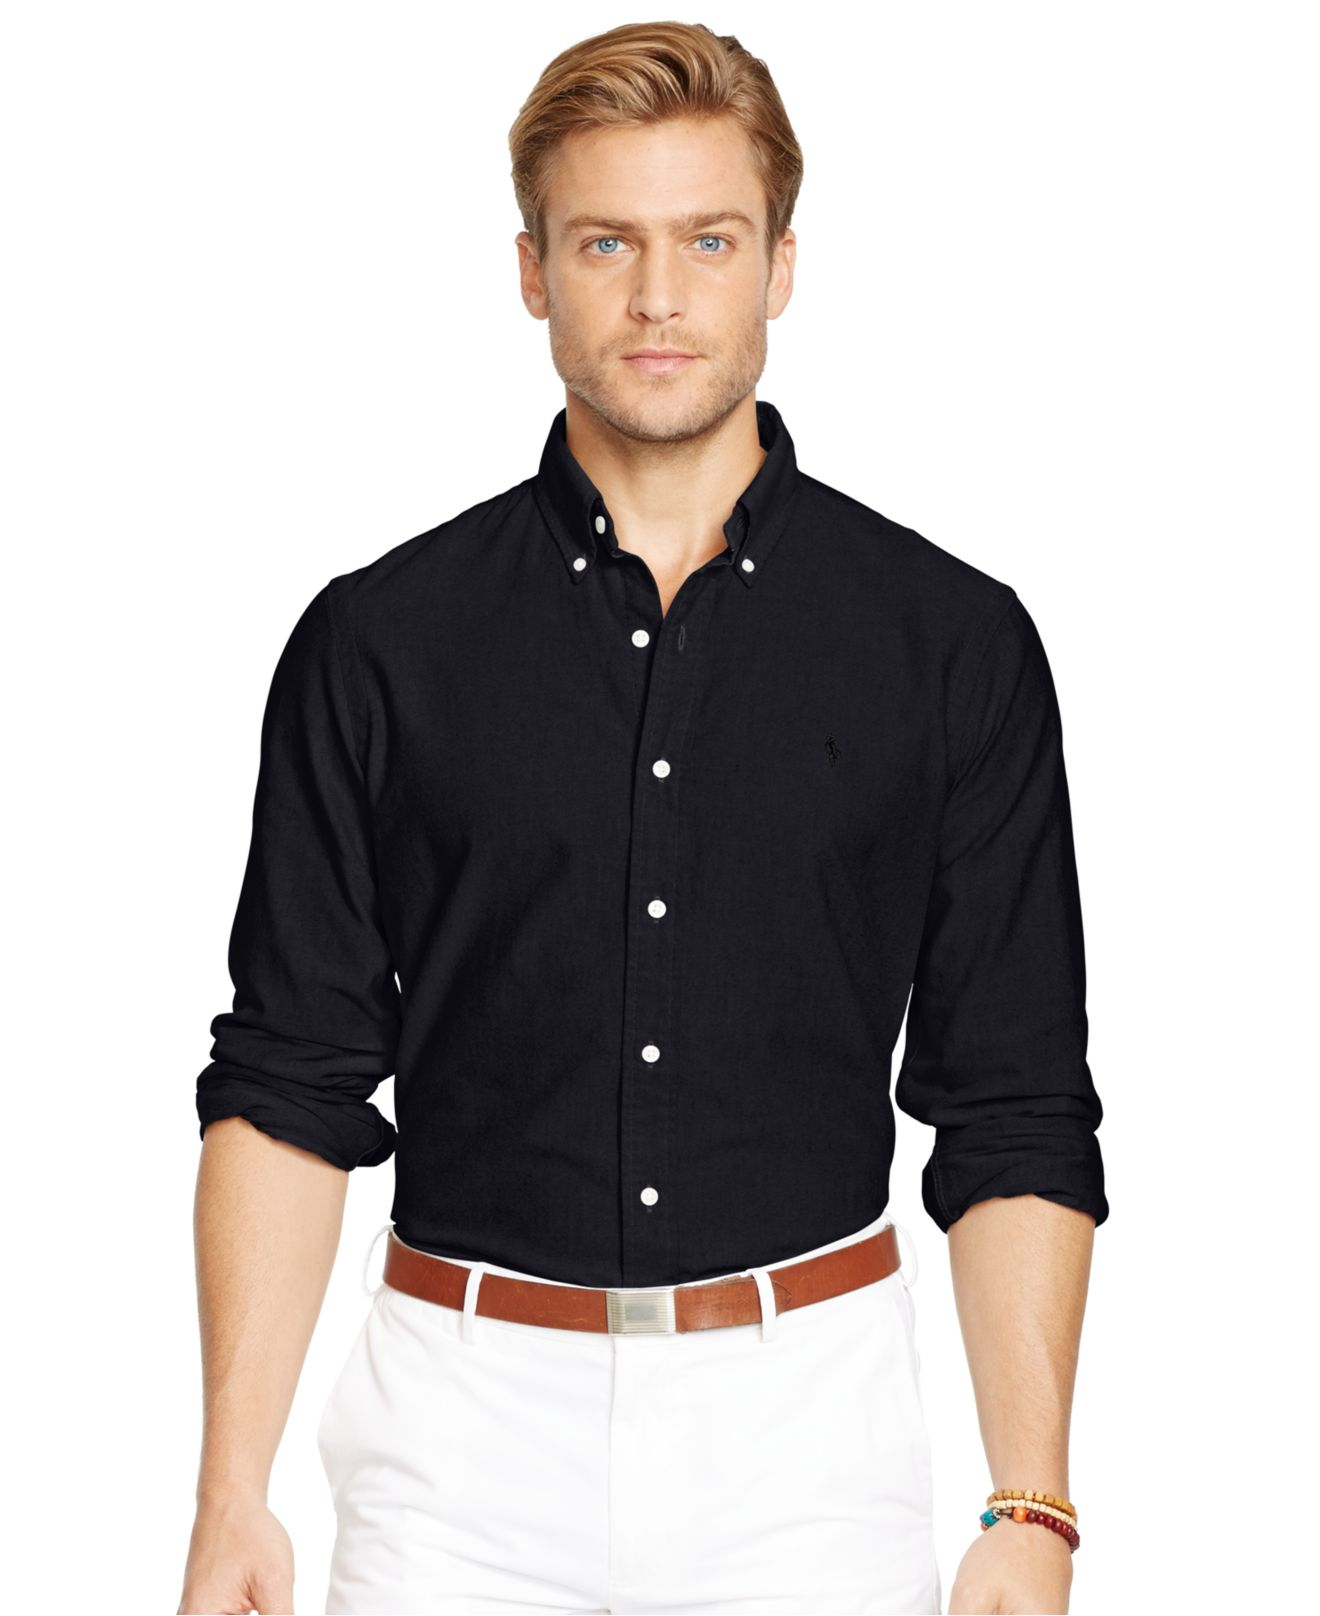 Lyst - Polo ralph lauren Oxford Shirt in Black for Men